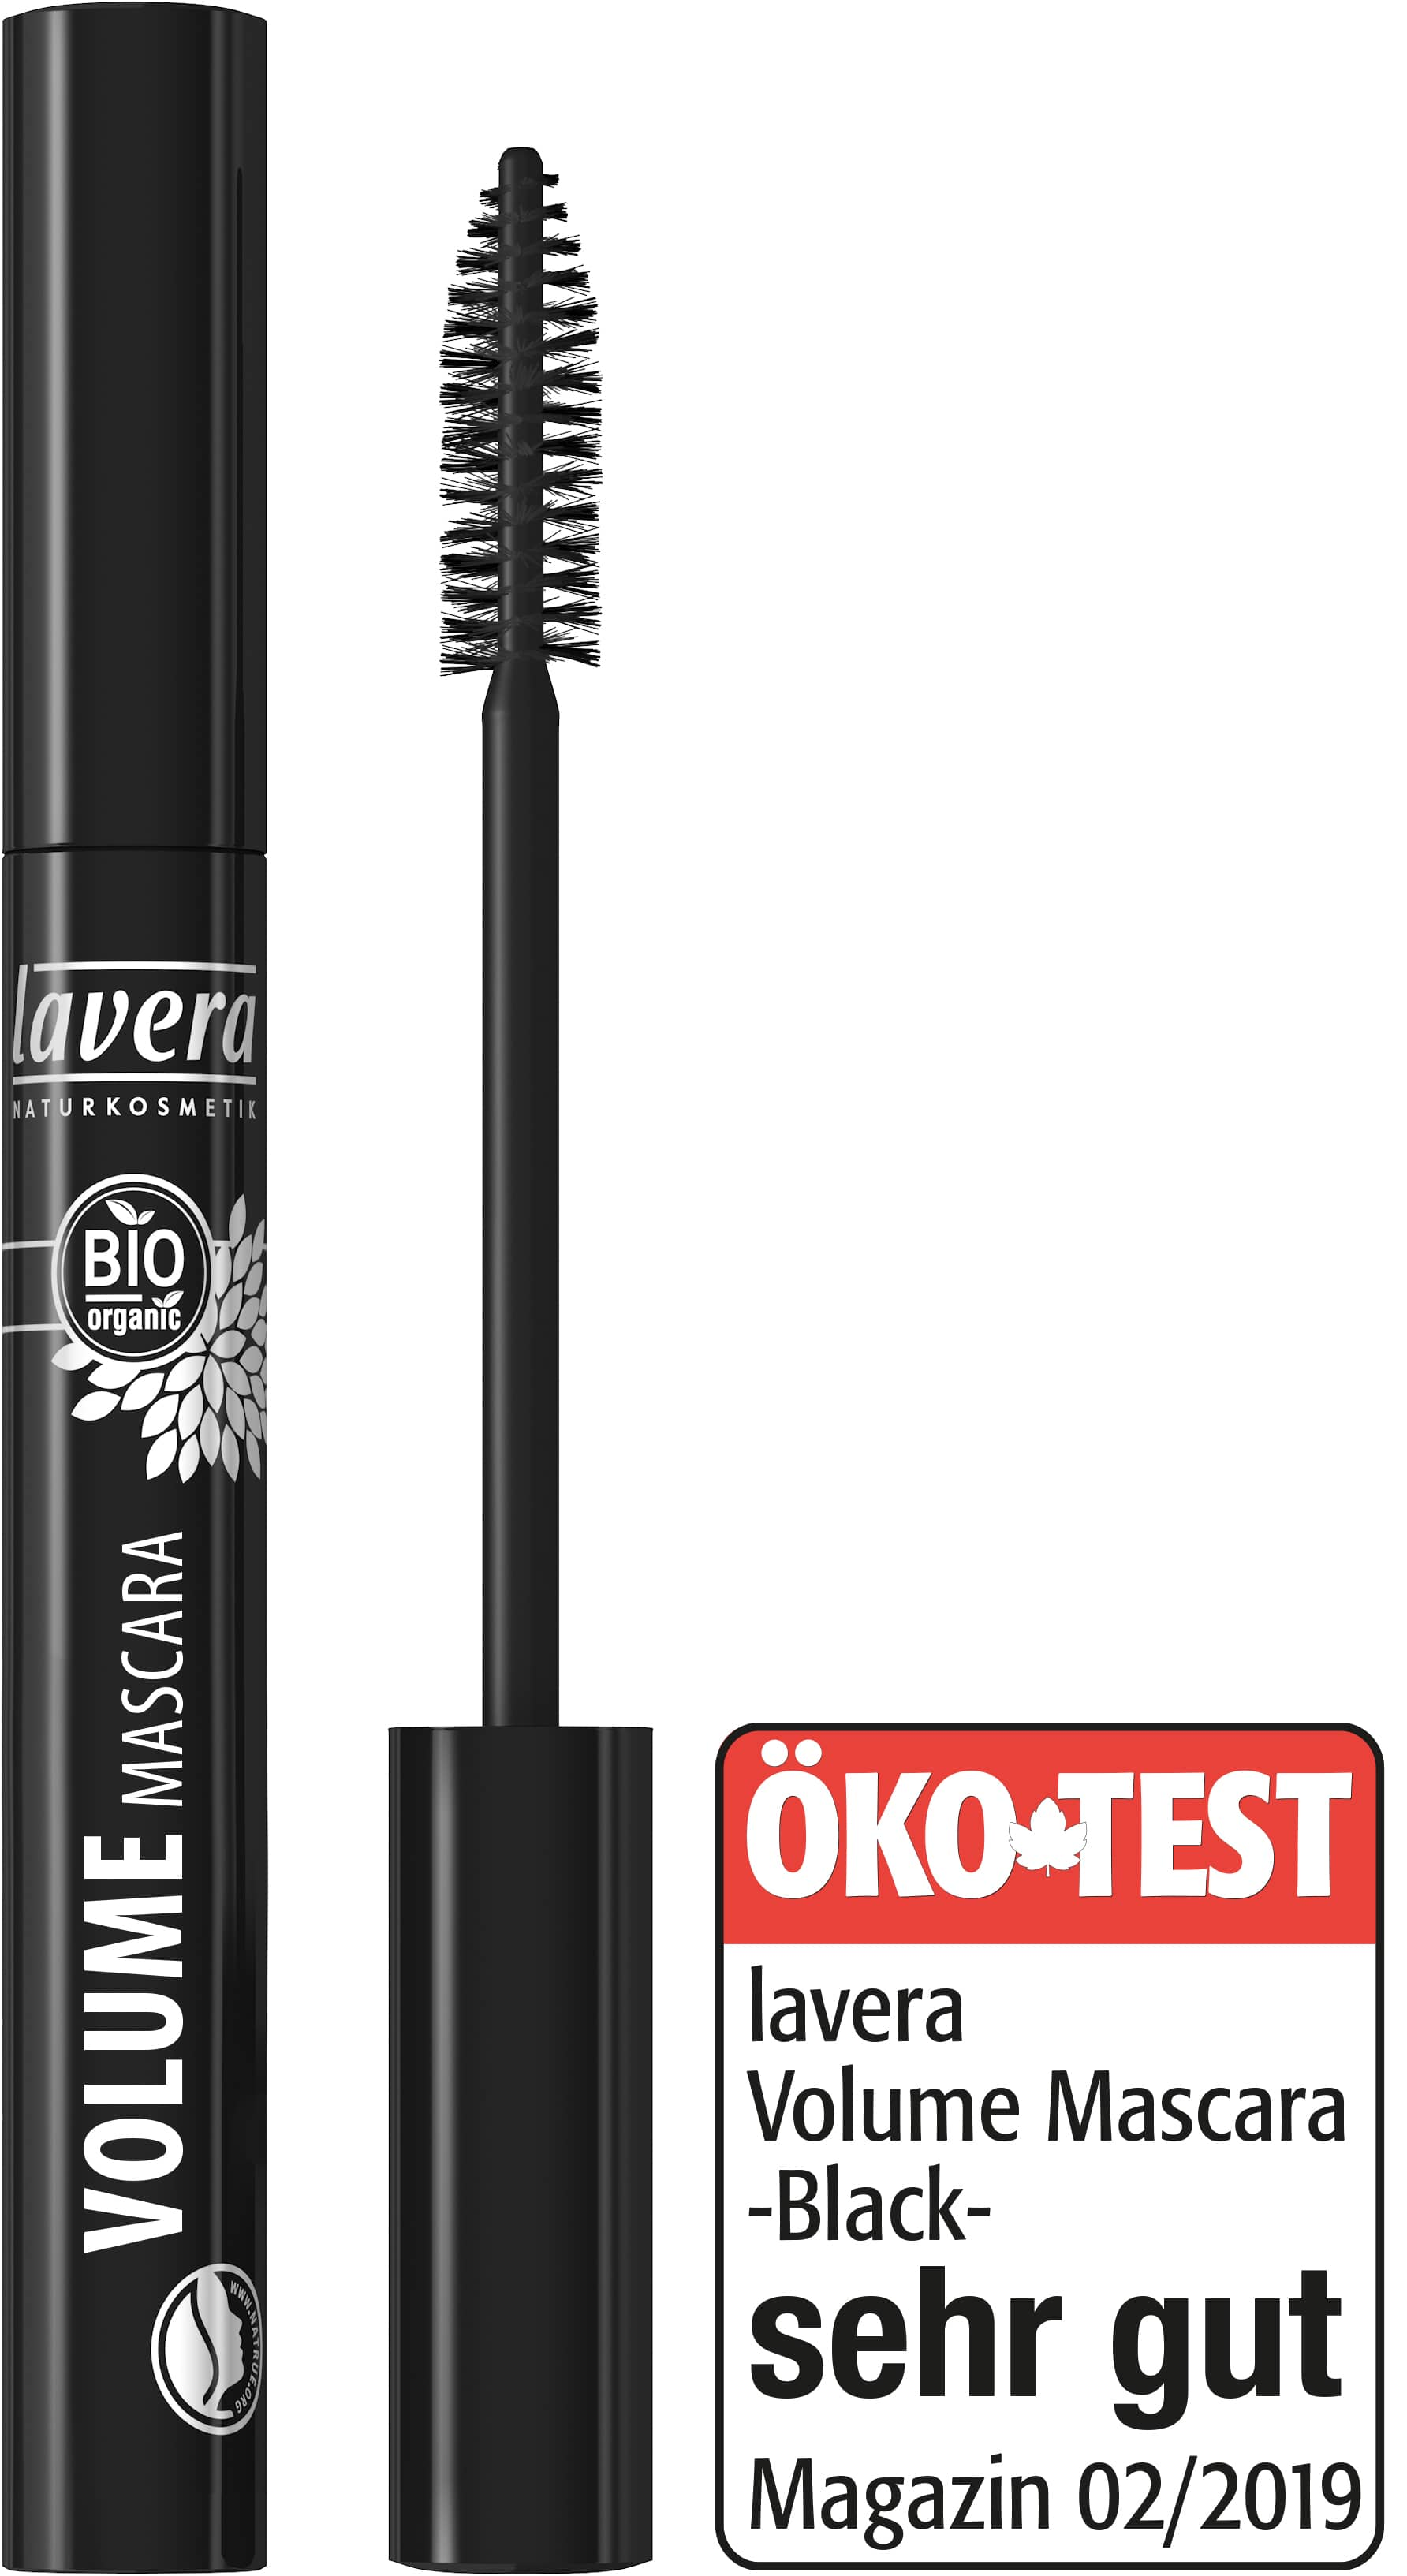 VOLUME MASCARA -Black-